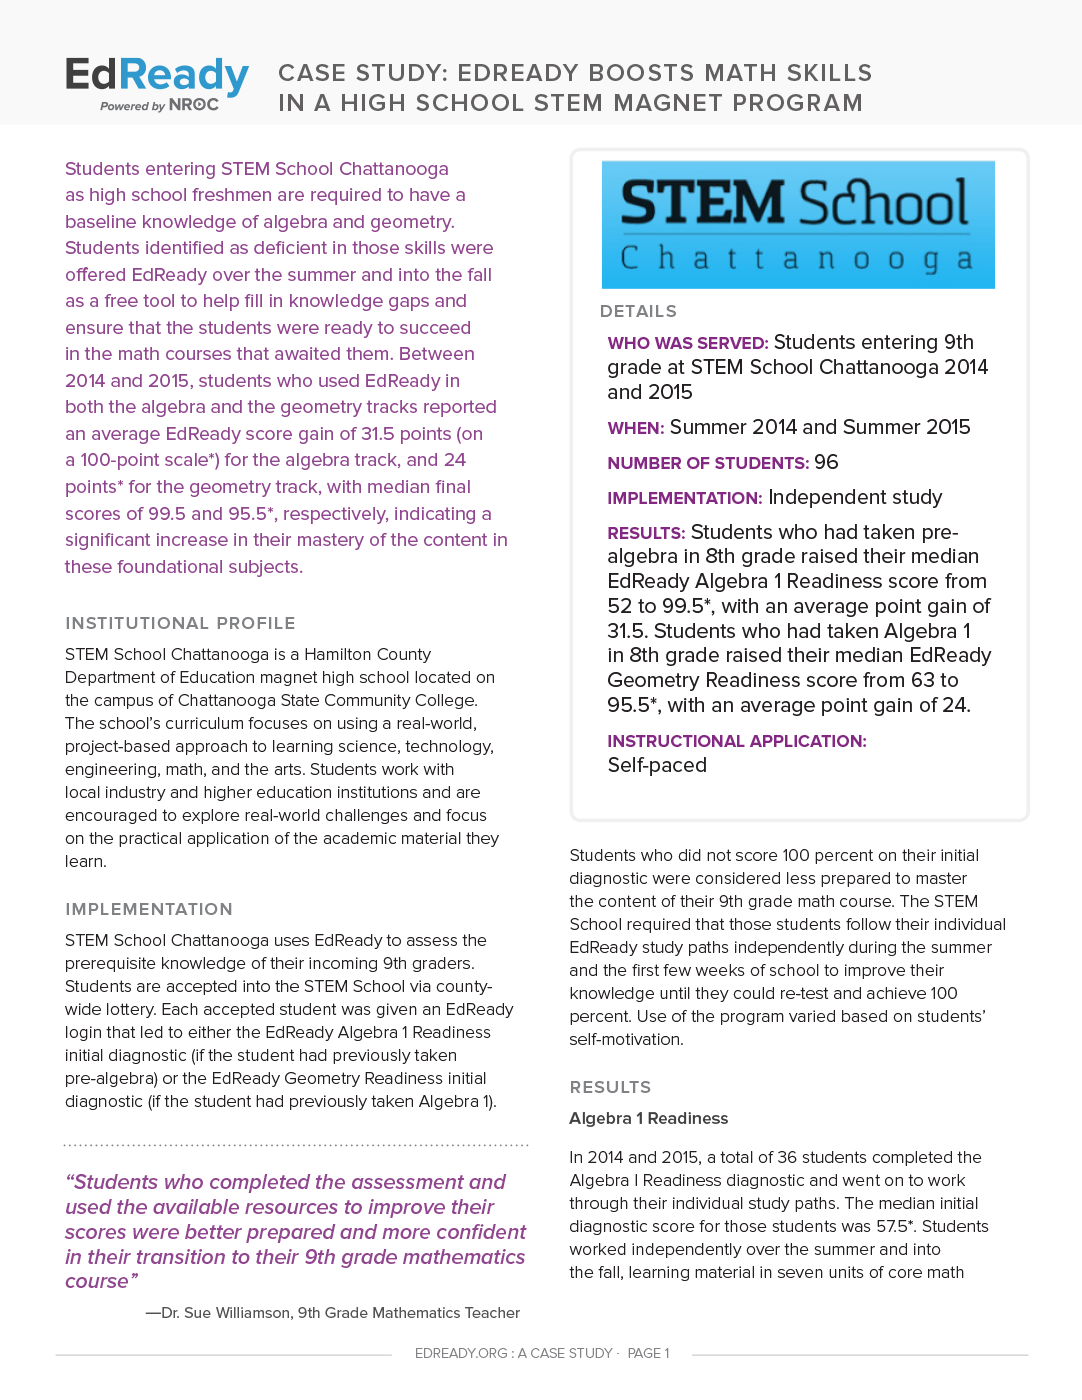 High School STEM Magnet Program